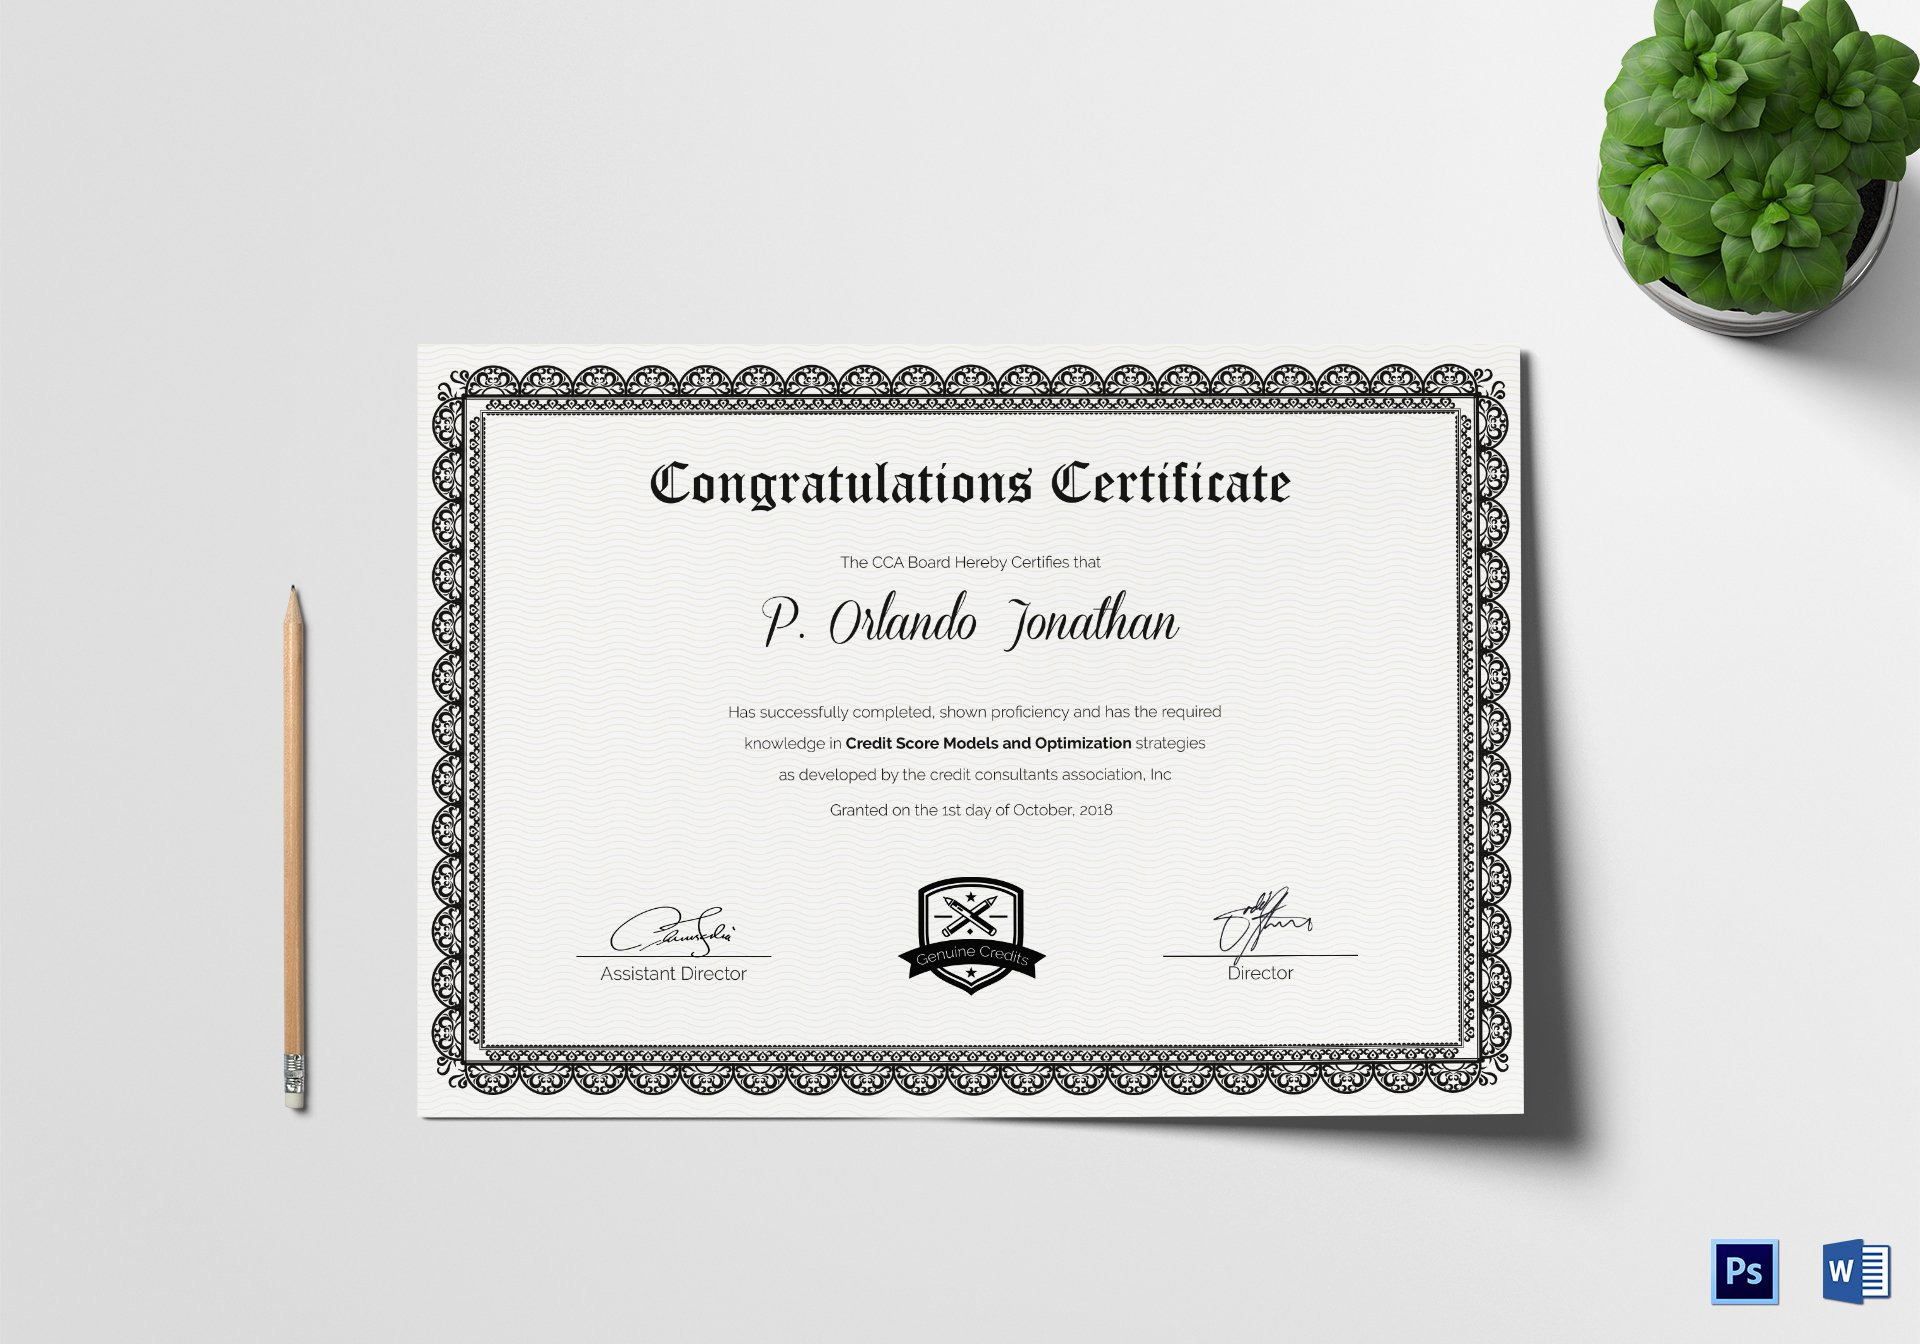 Congratulation Certificate Template Word Inspirational Congratulations Certificate Design Template In Psd Word